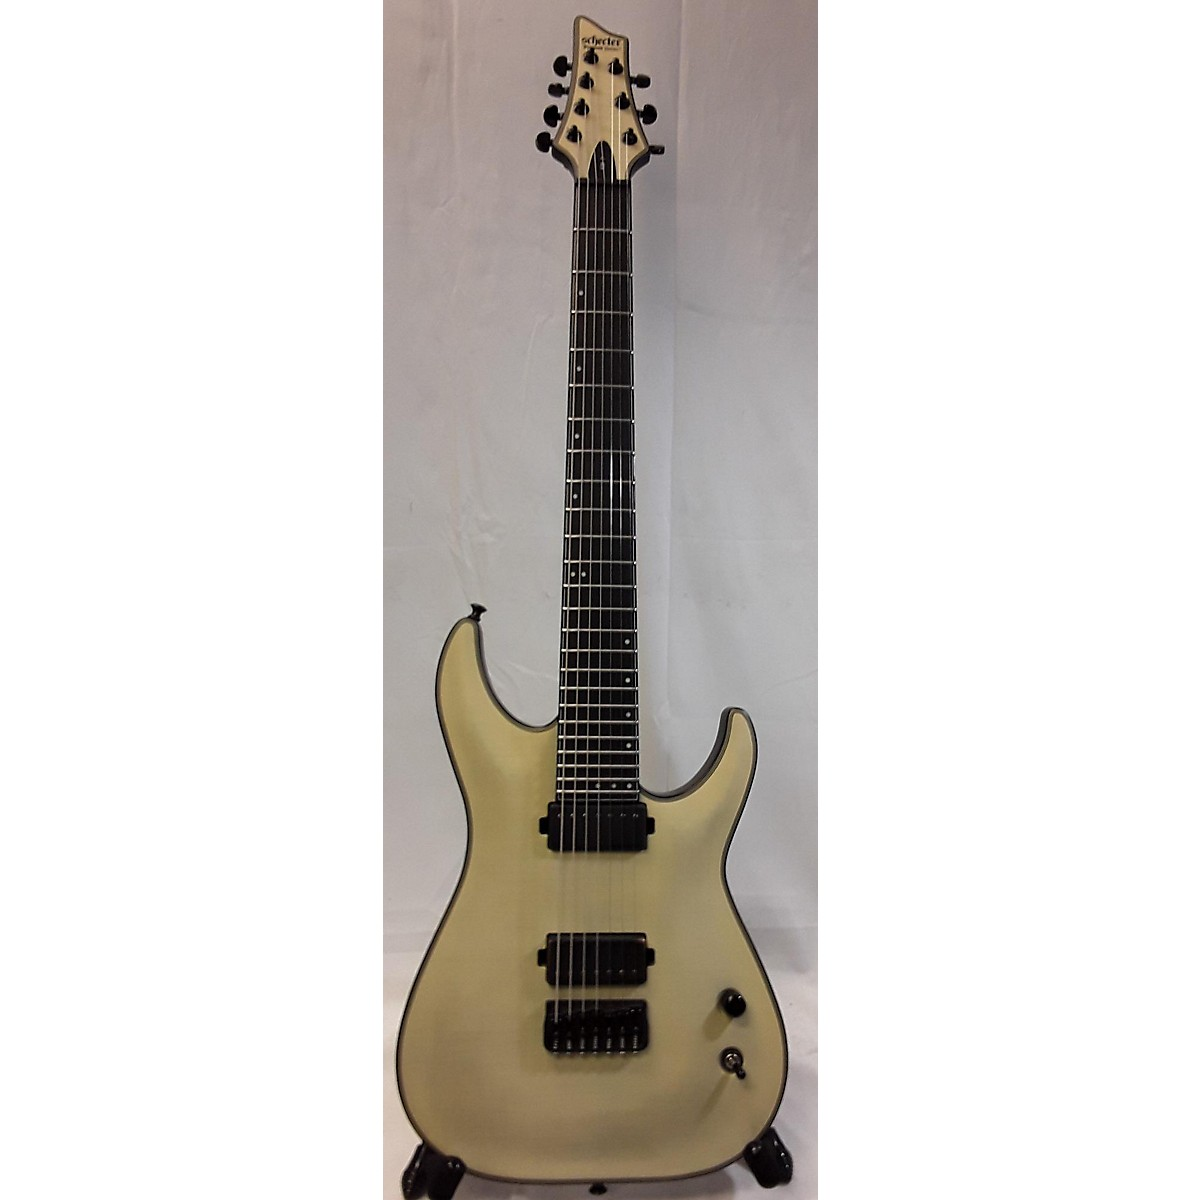 Schecter Guitar Research KM-7 Solid Body Electric Guitar